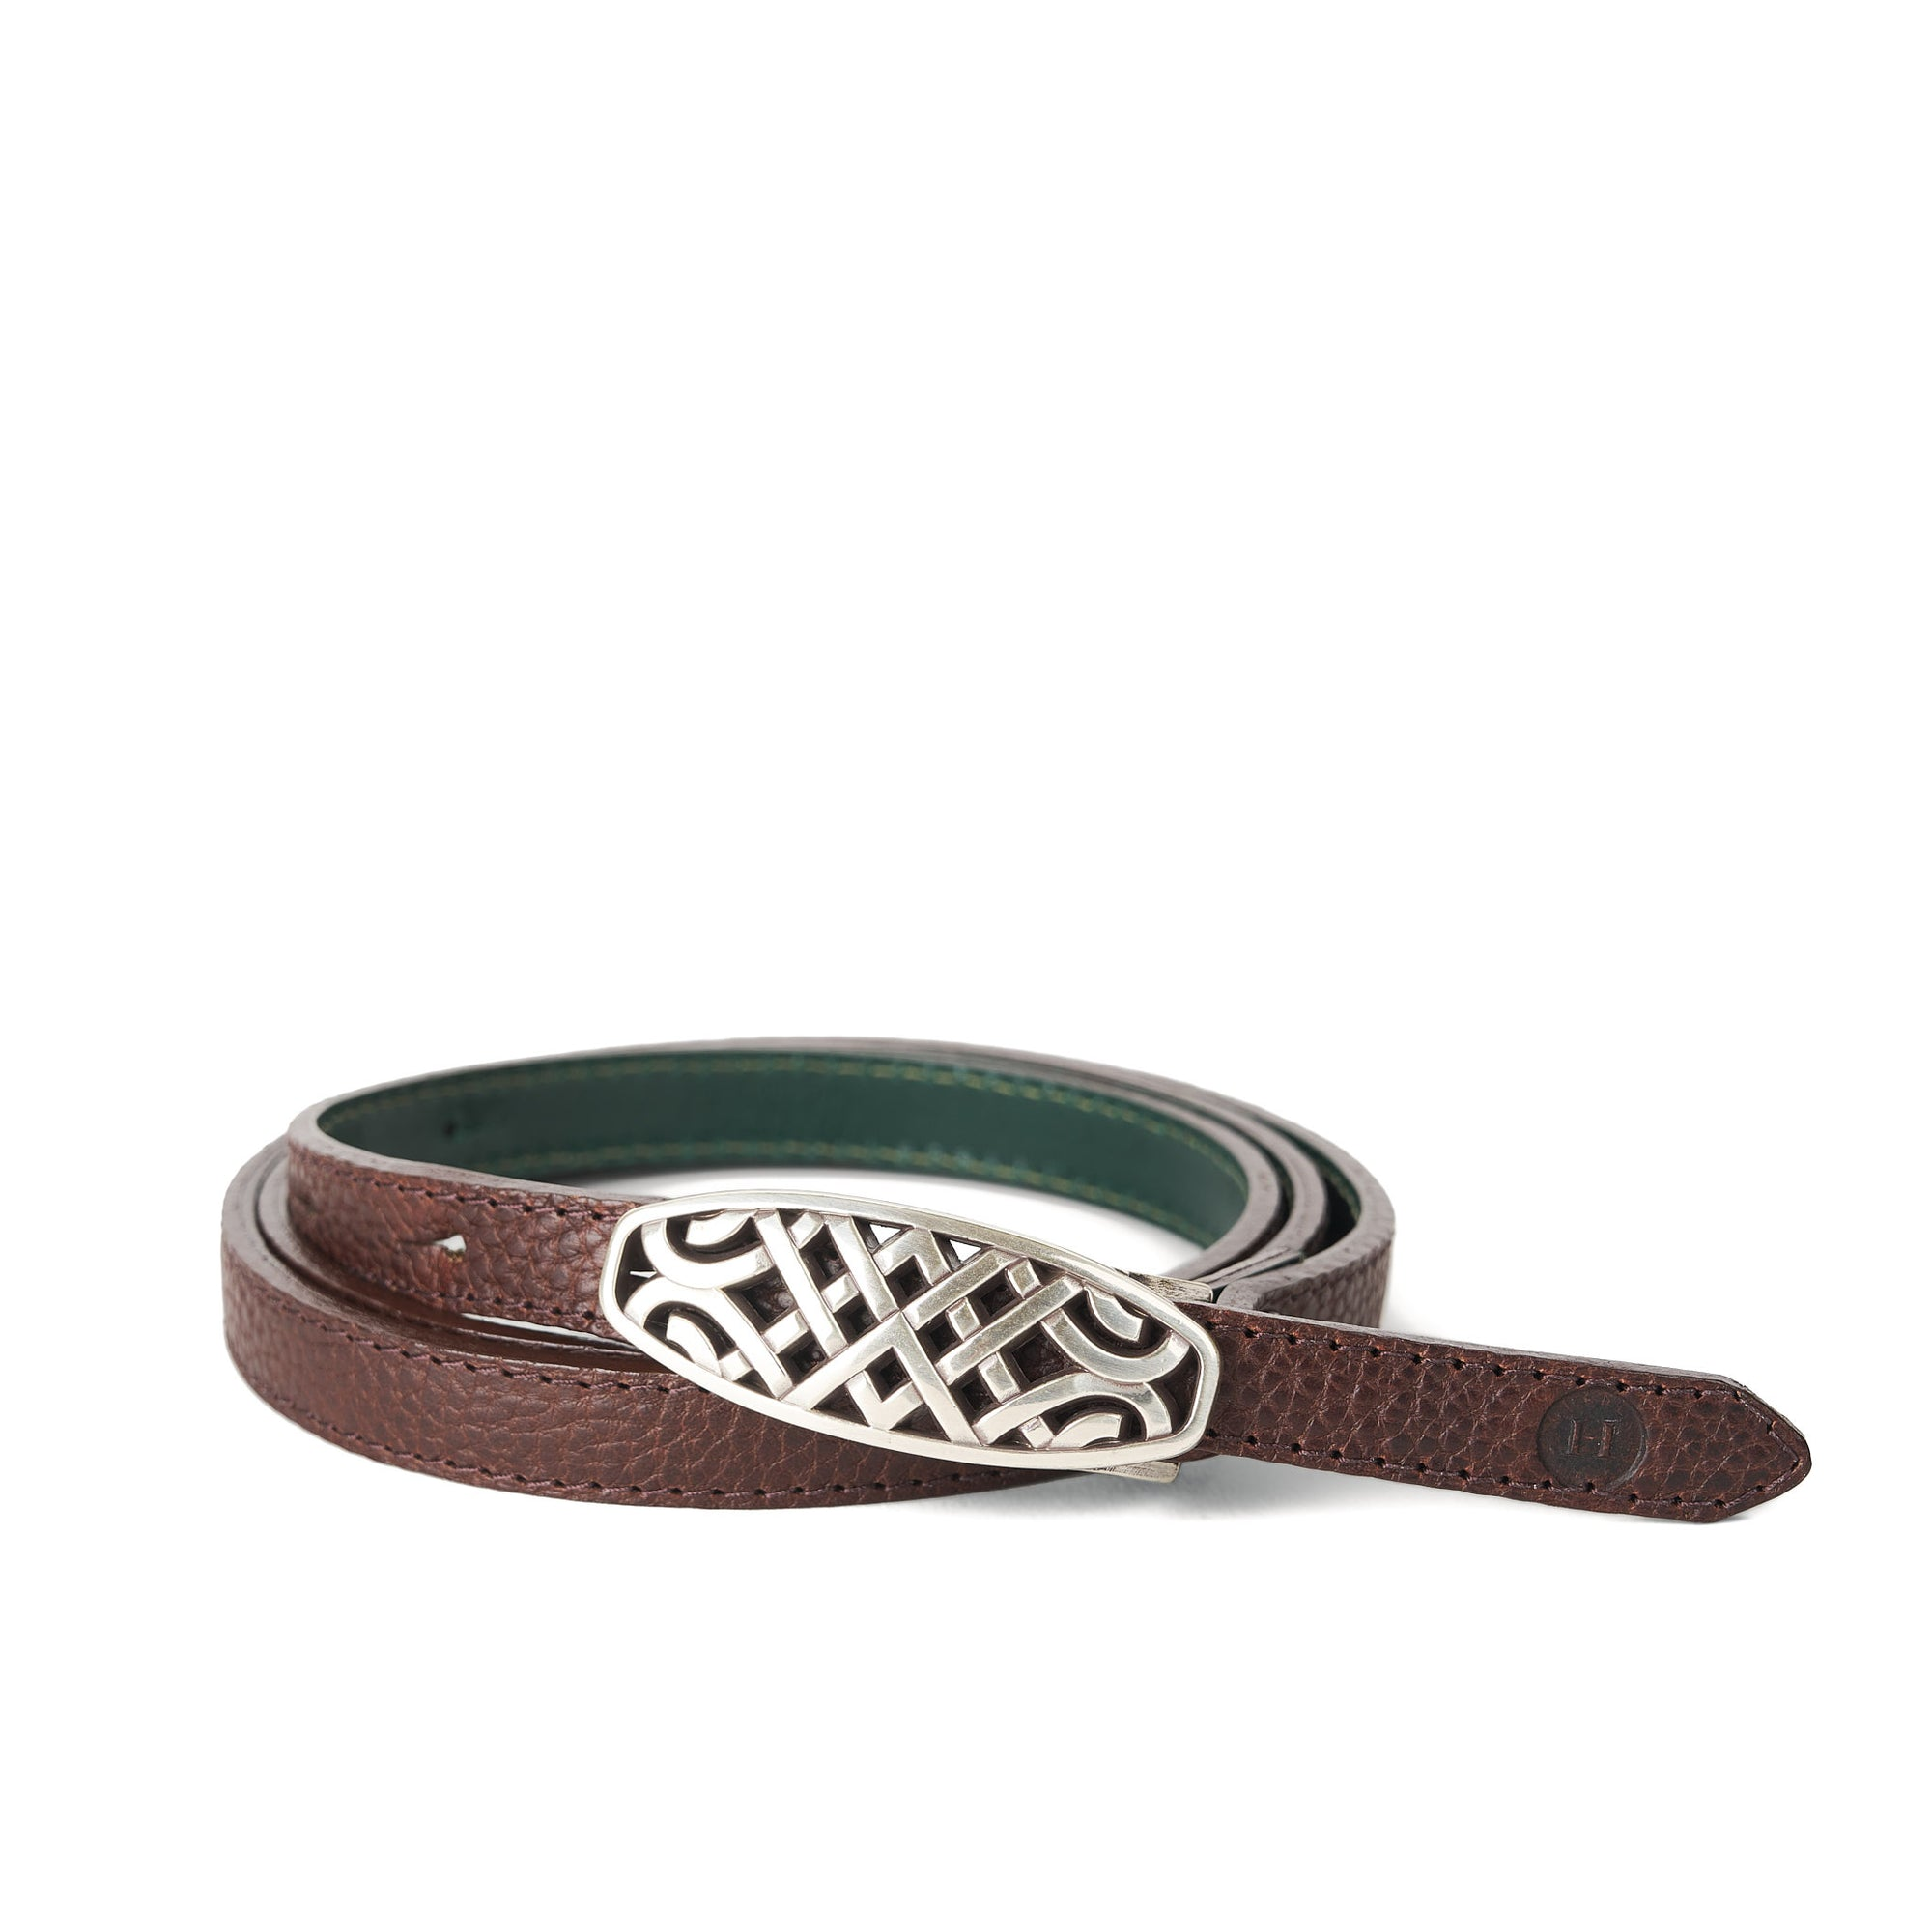 Holden Ríasc Celtic Belt - Dark Brown